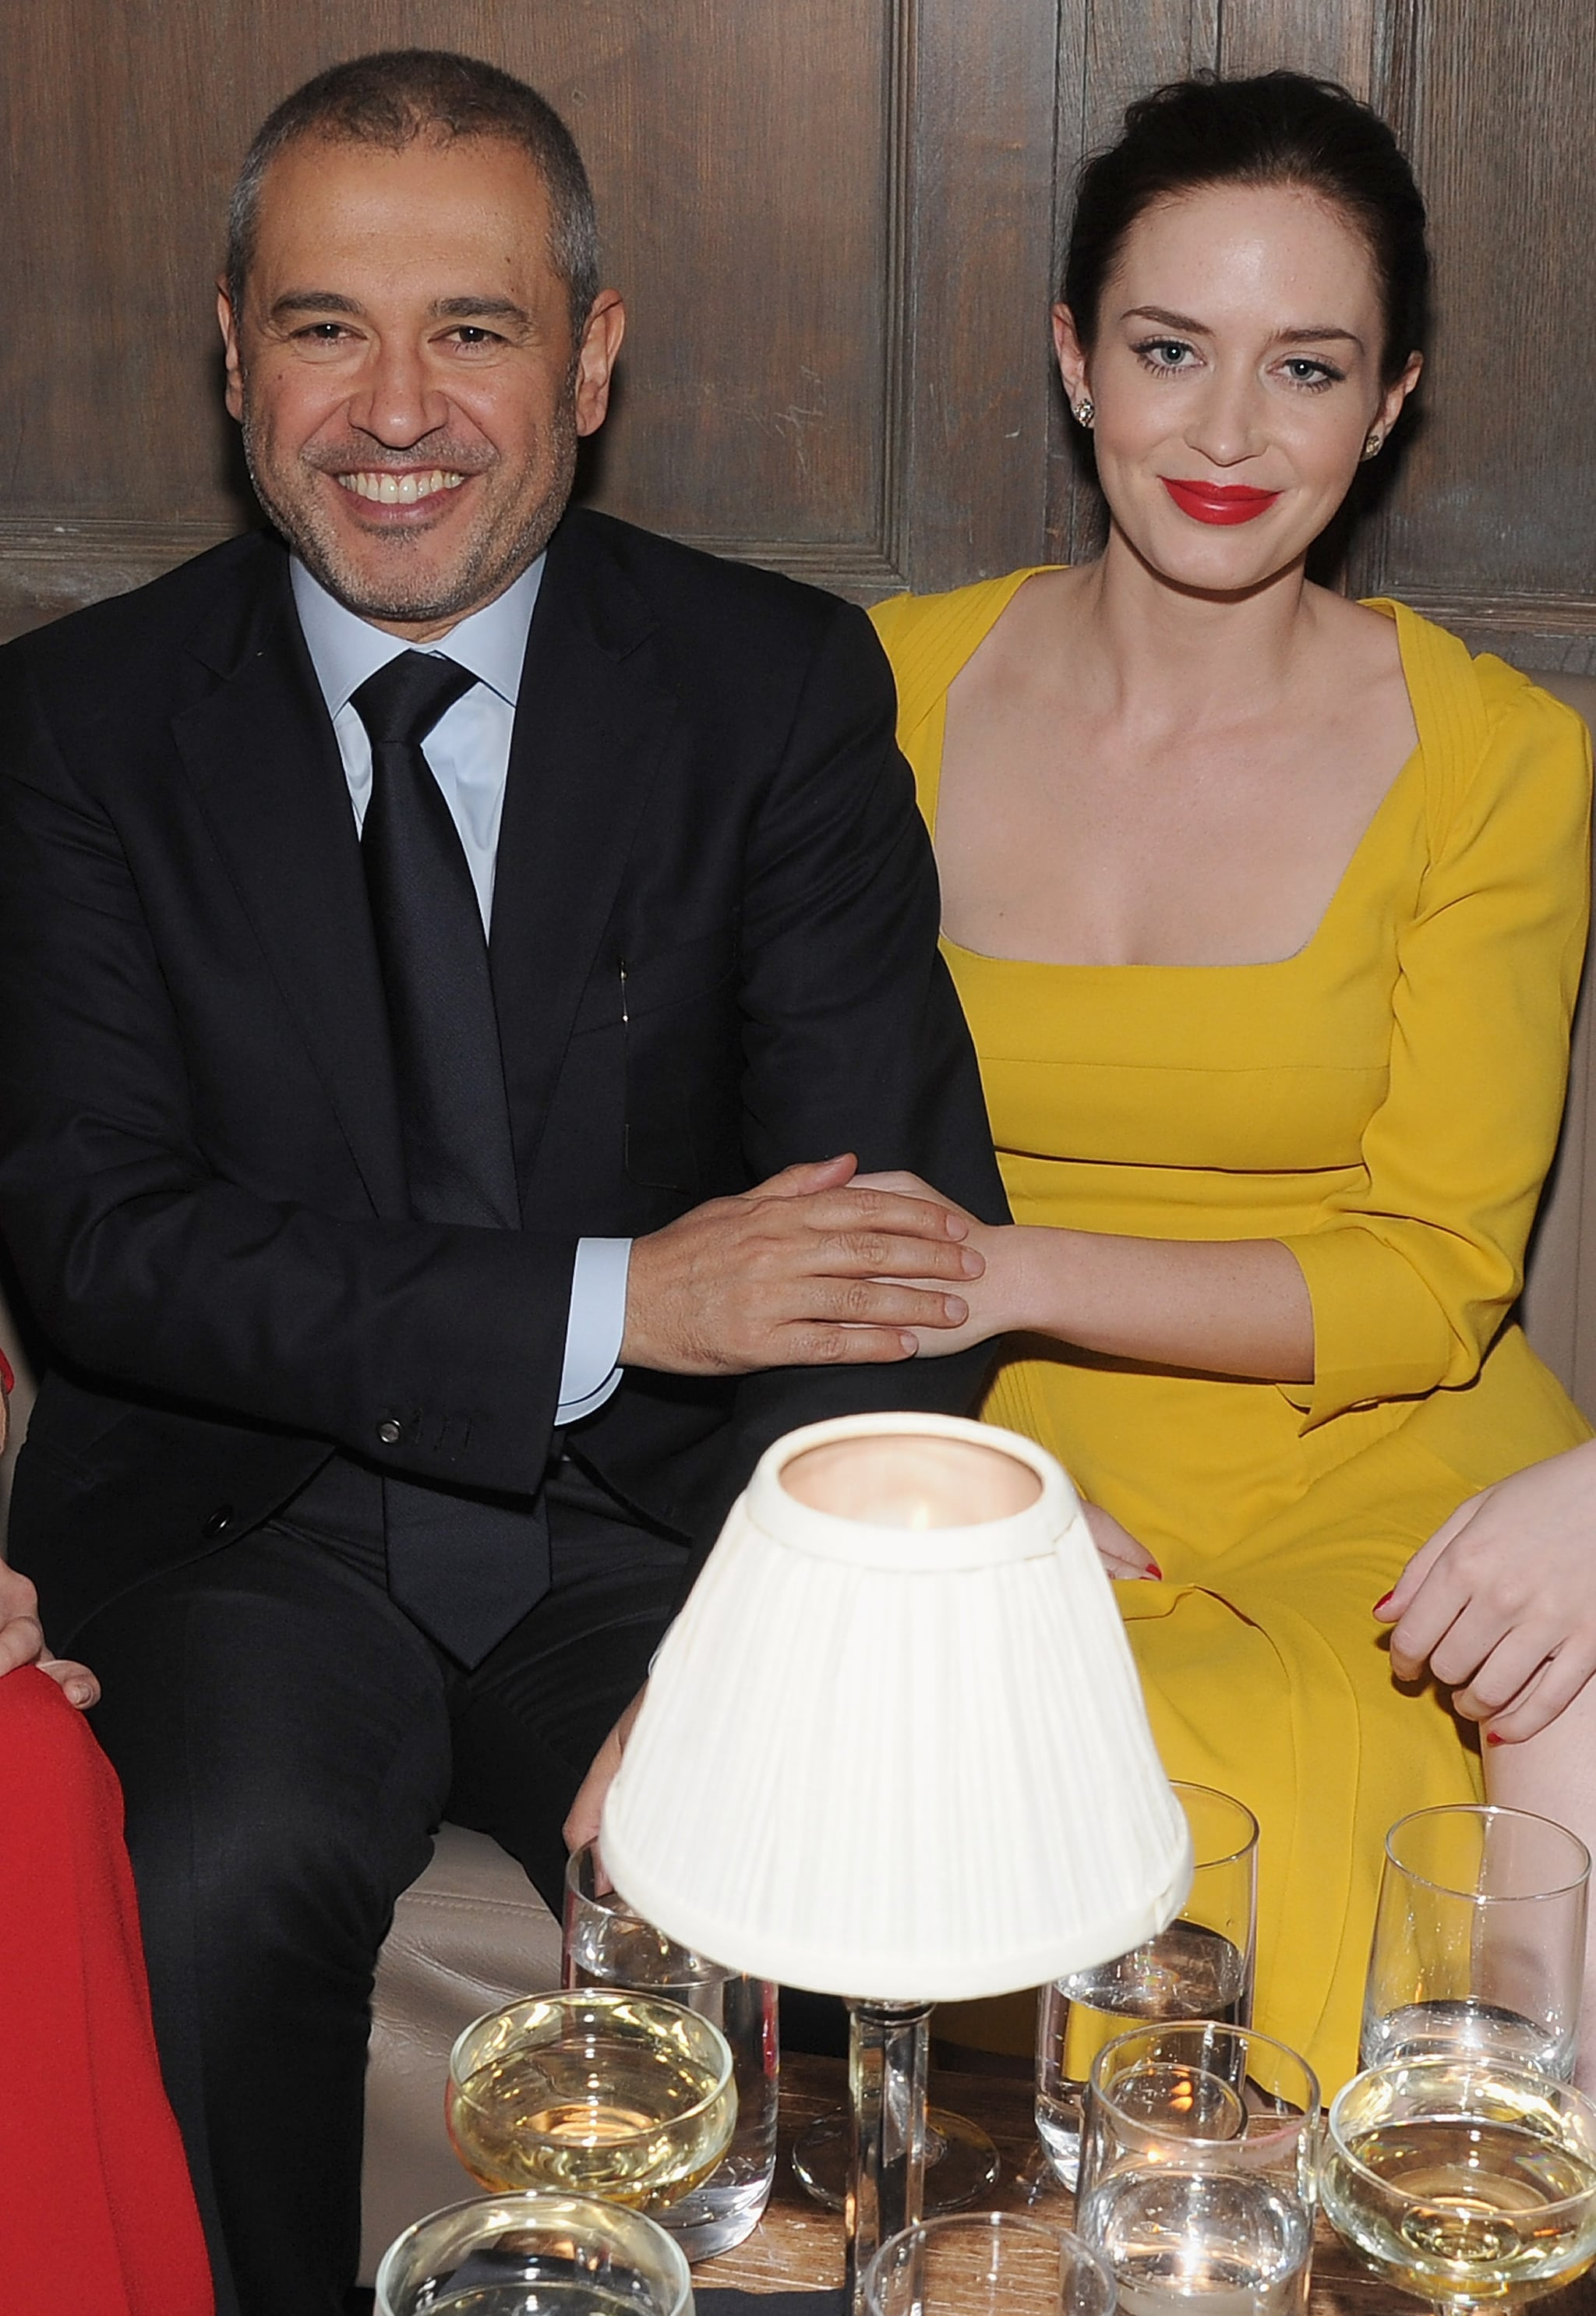 Elie Saab and Emily Blunt were happy to be together at a private dinner for Elie Saab in NYC.